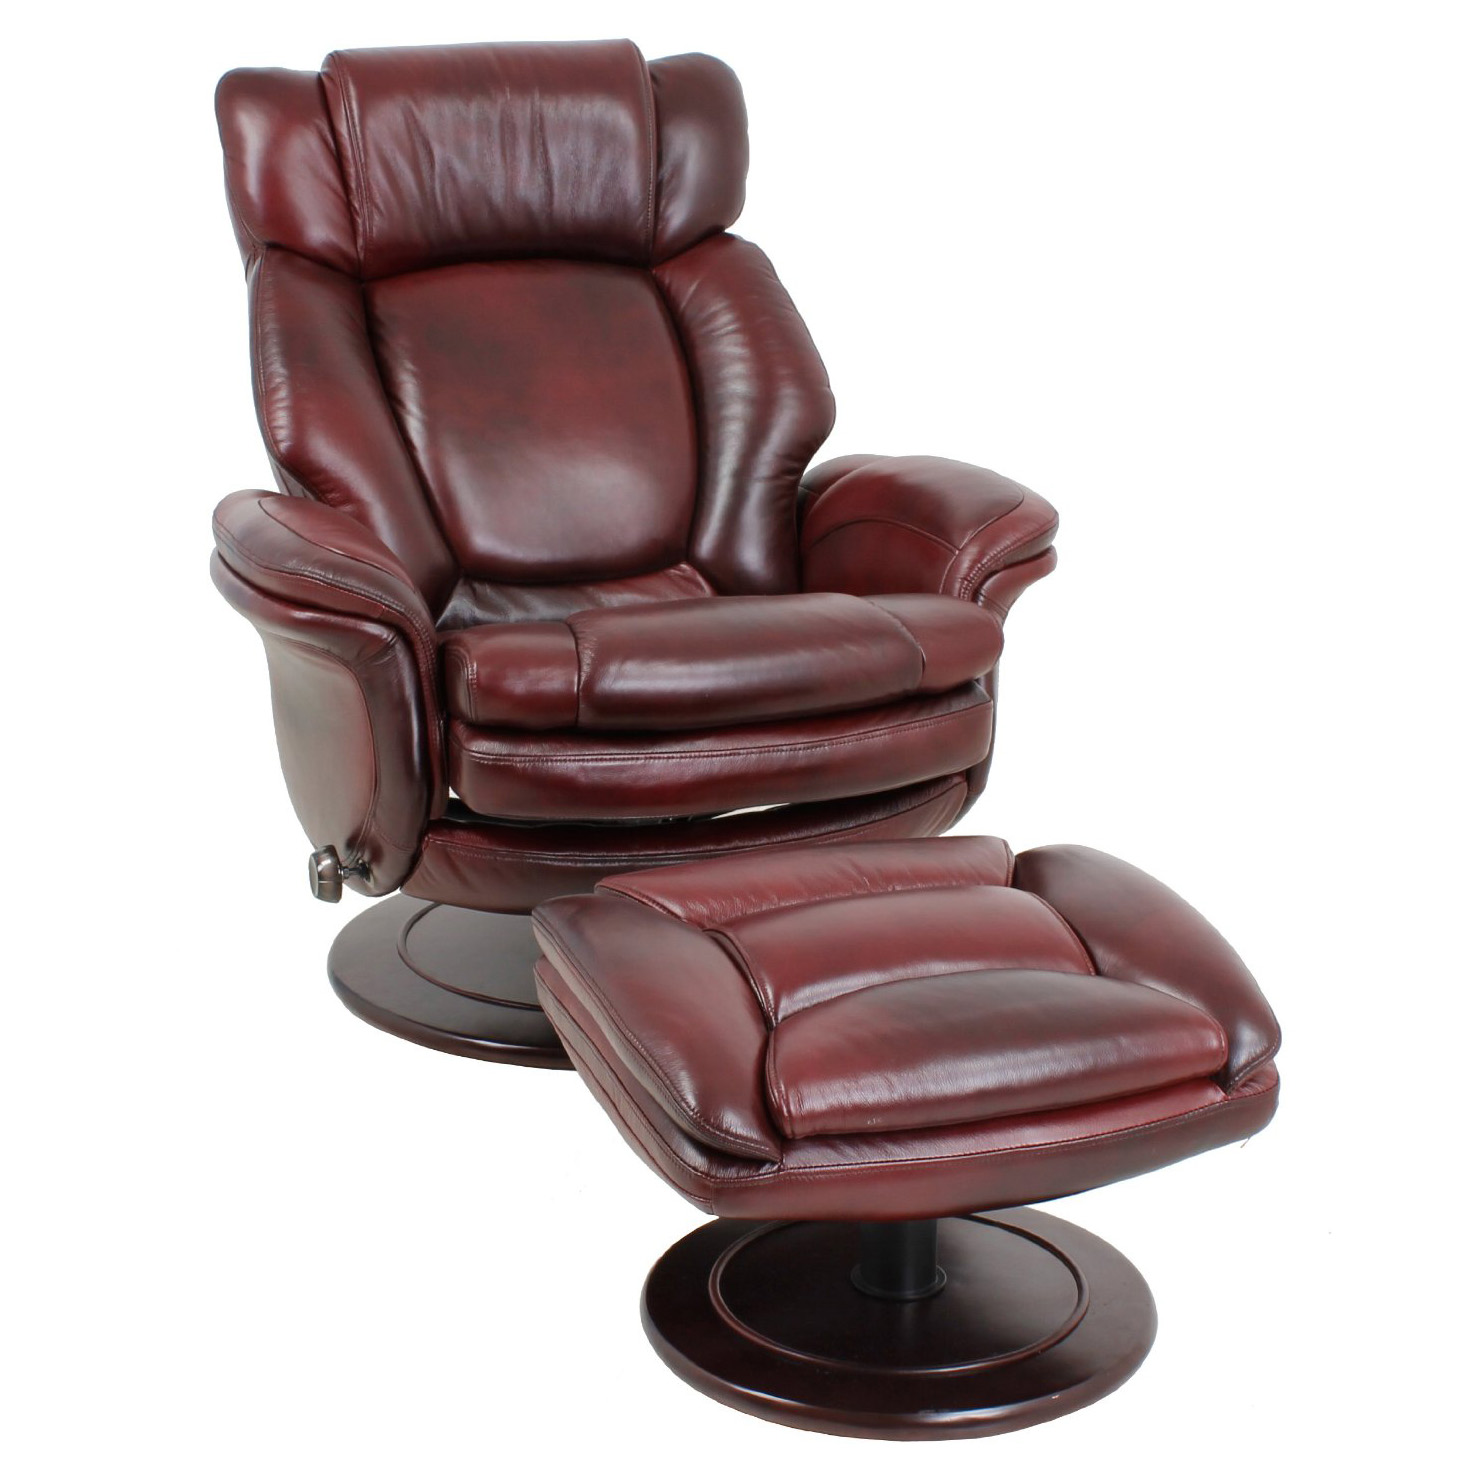 barcalounger lumina ii recliner chair and ottoman leather recliner rh backstore com